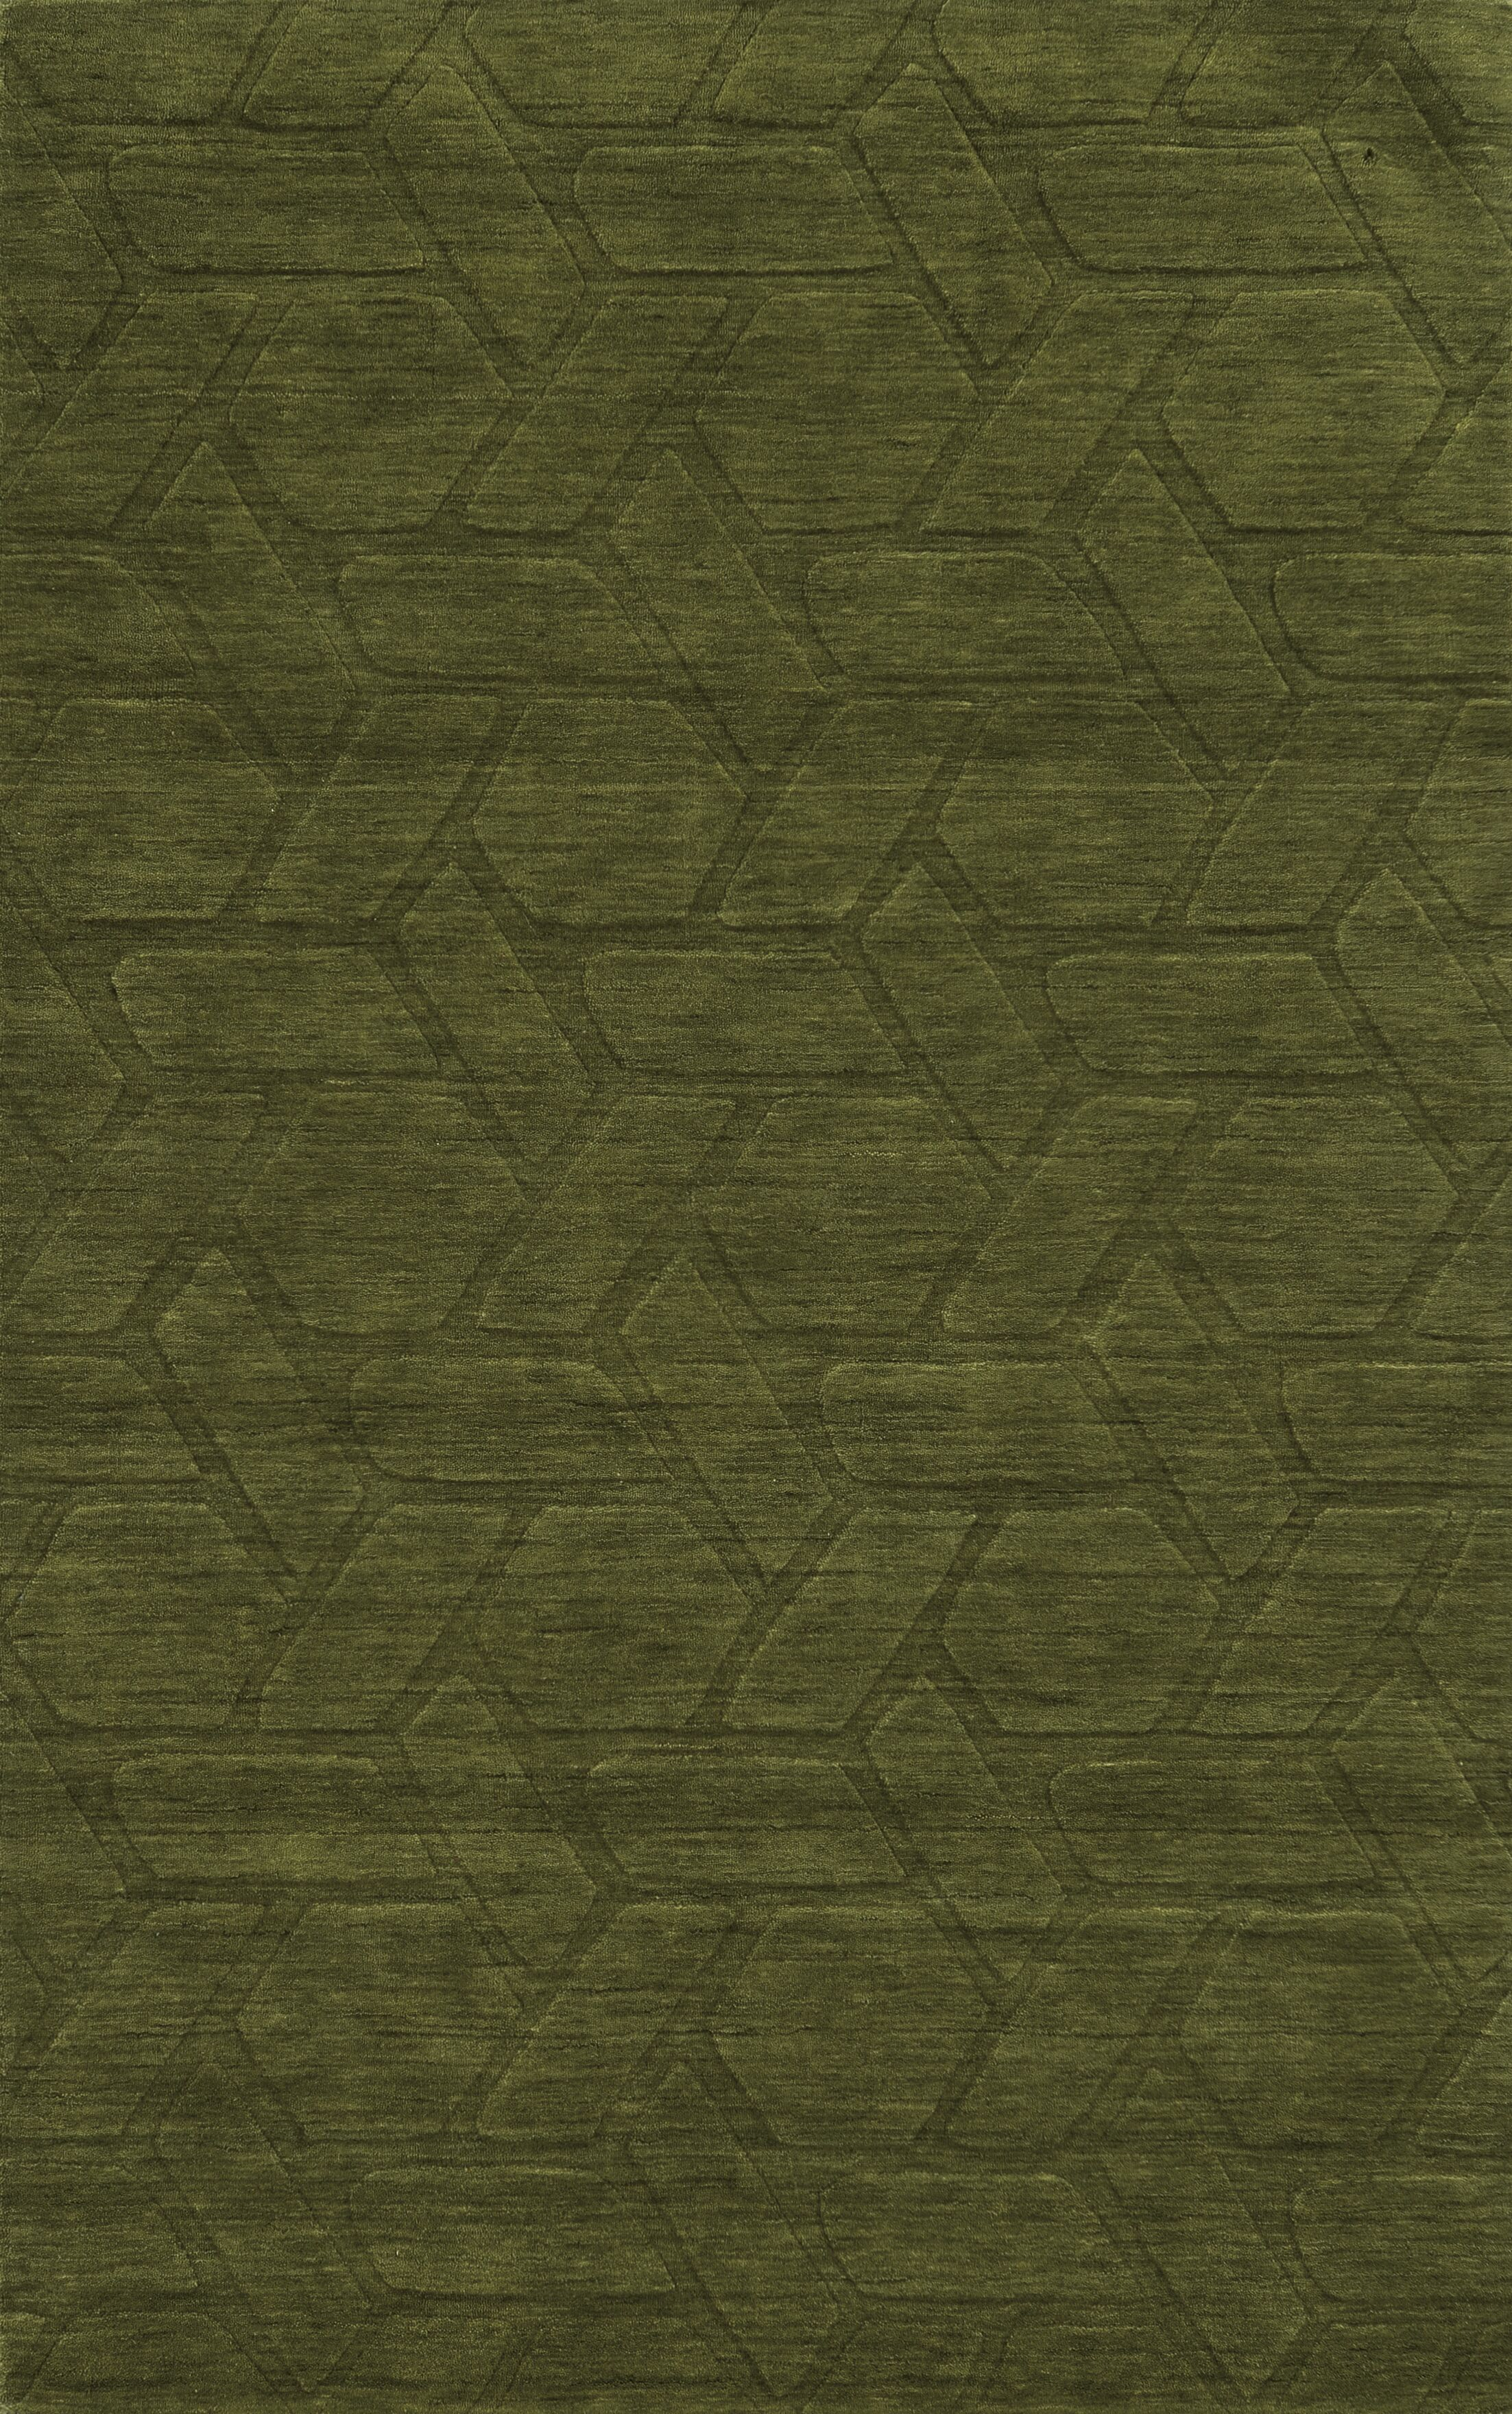 Trieste Hand-Loomed Green Area Rug Rug Size: Rectangle 9' x 12'